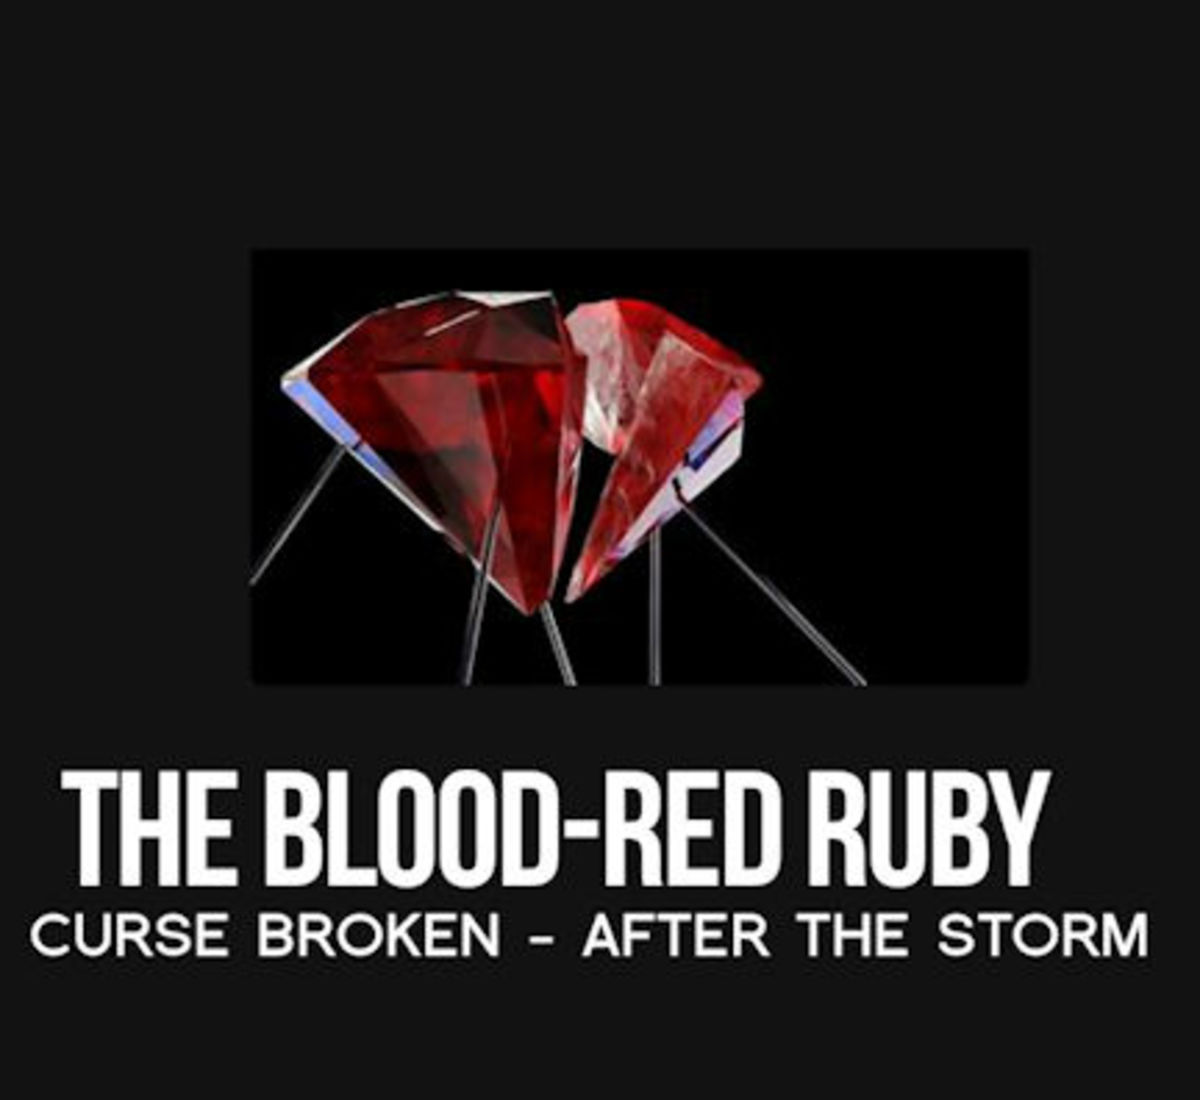 The Blood-Red Ruby: After the Storm 19